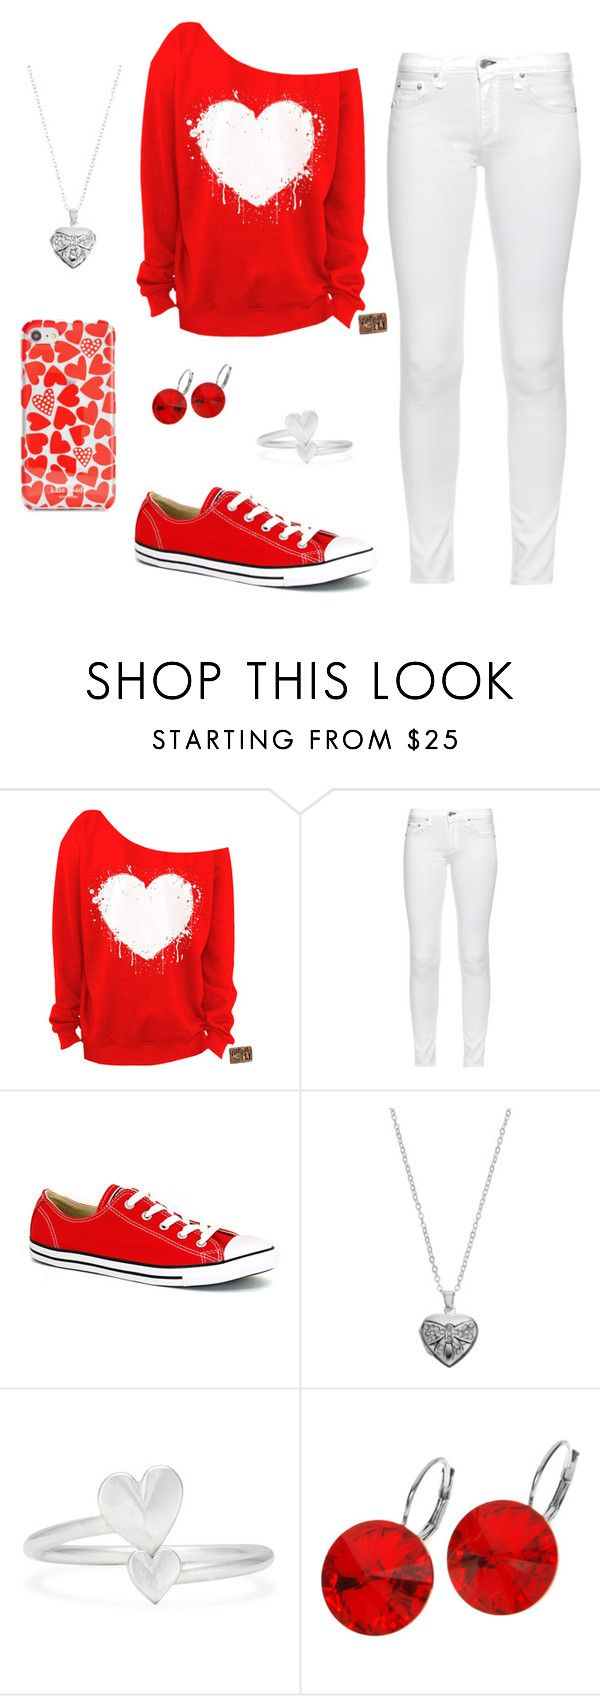 """""""Valentines Day Ready"""" by zoehahn on Polyvore featuring rag & bone, Converse, Silver Expressions by LArocks, Alex and Ani, L. Erickson and Kate Spade"""